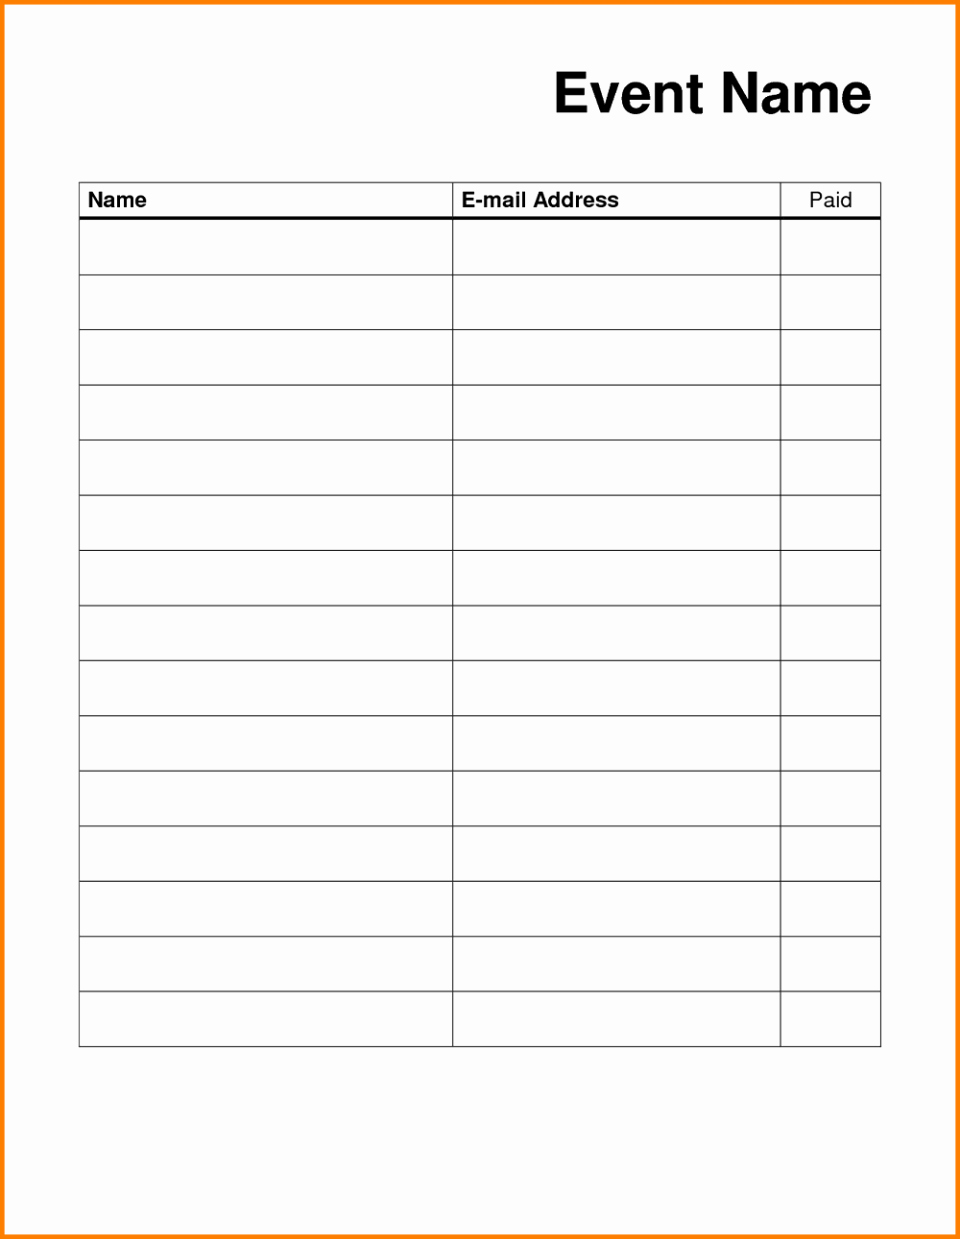 Sign Up Sheet Pdf Fresh Blank Sign In Sheet for Training Sheets Email Up Just Name